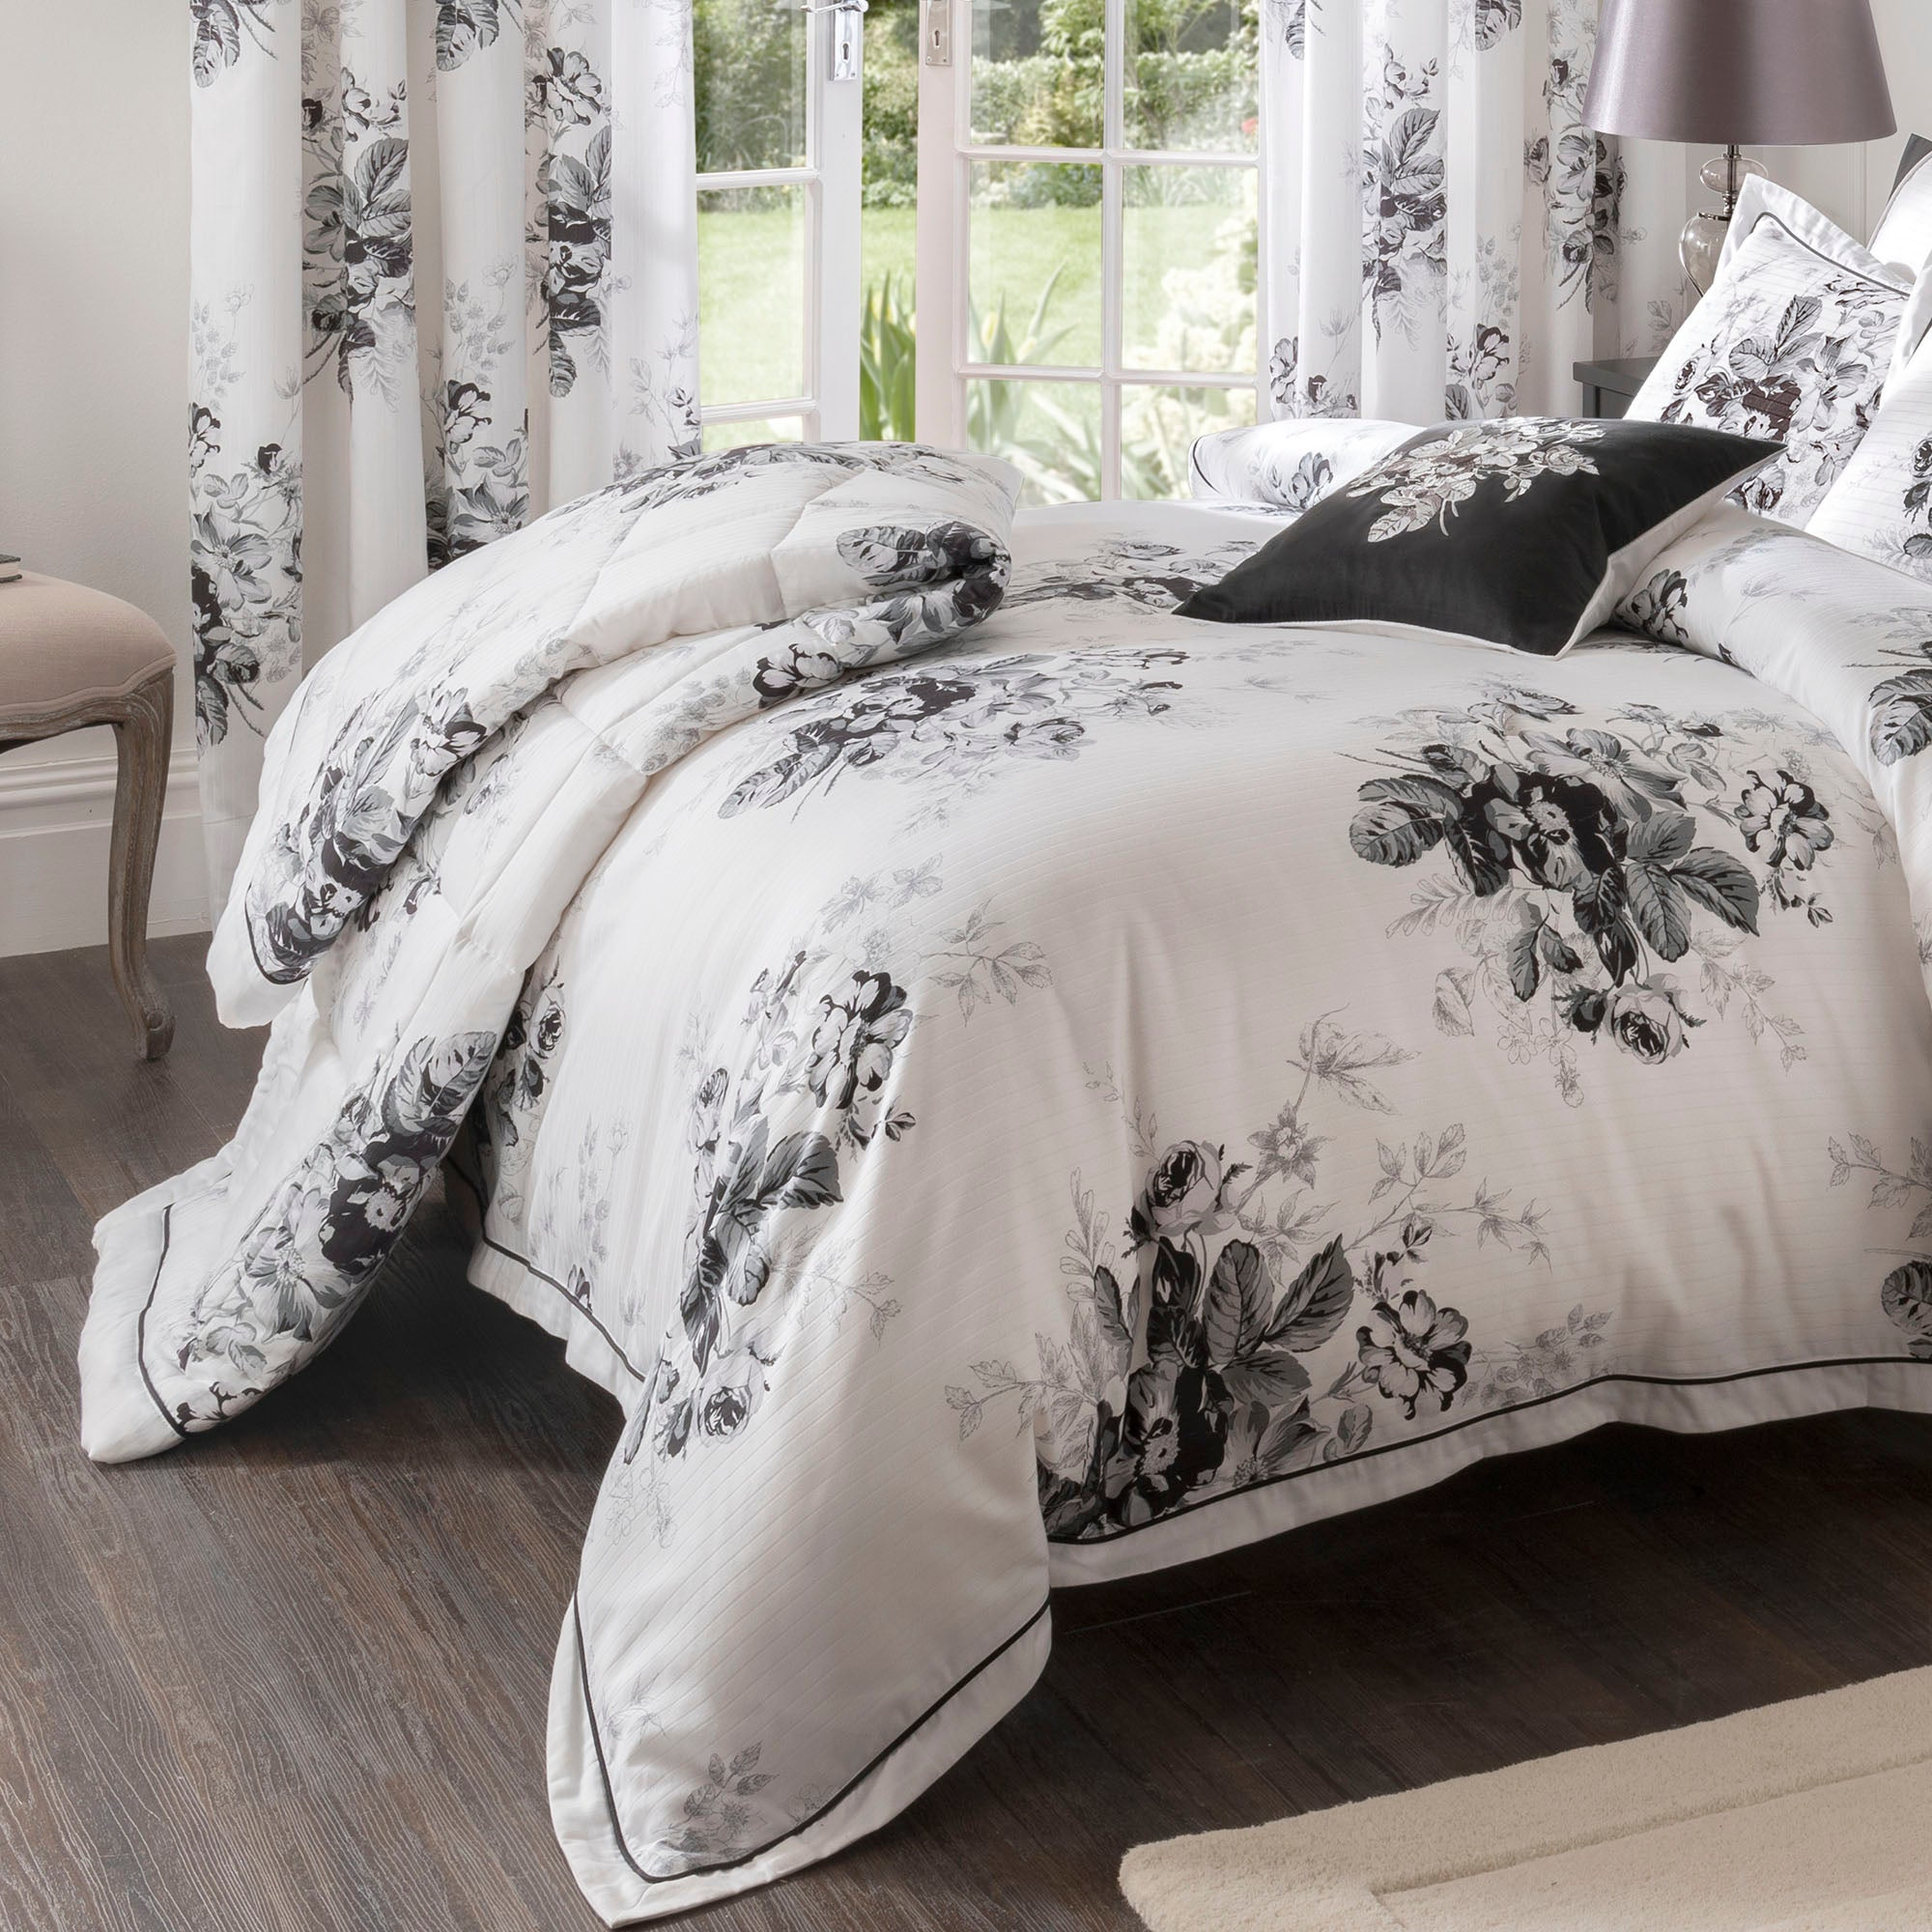 Dorma Black and White Gardenia Collection Bedspread